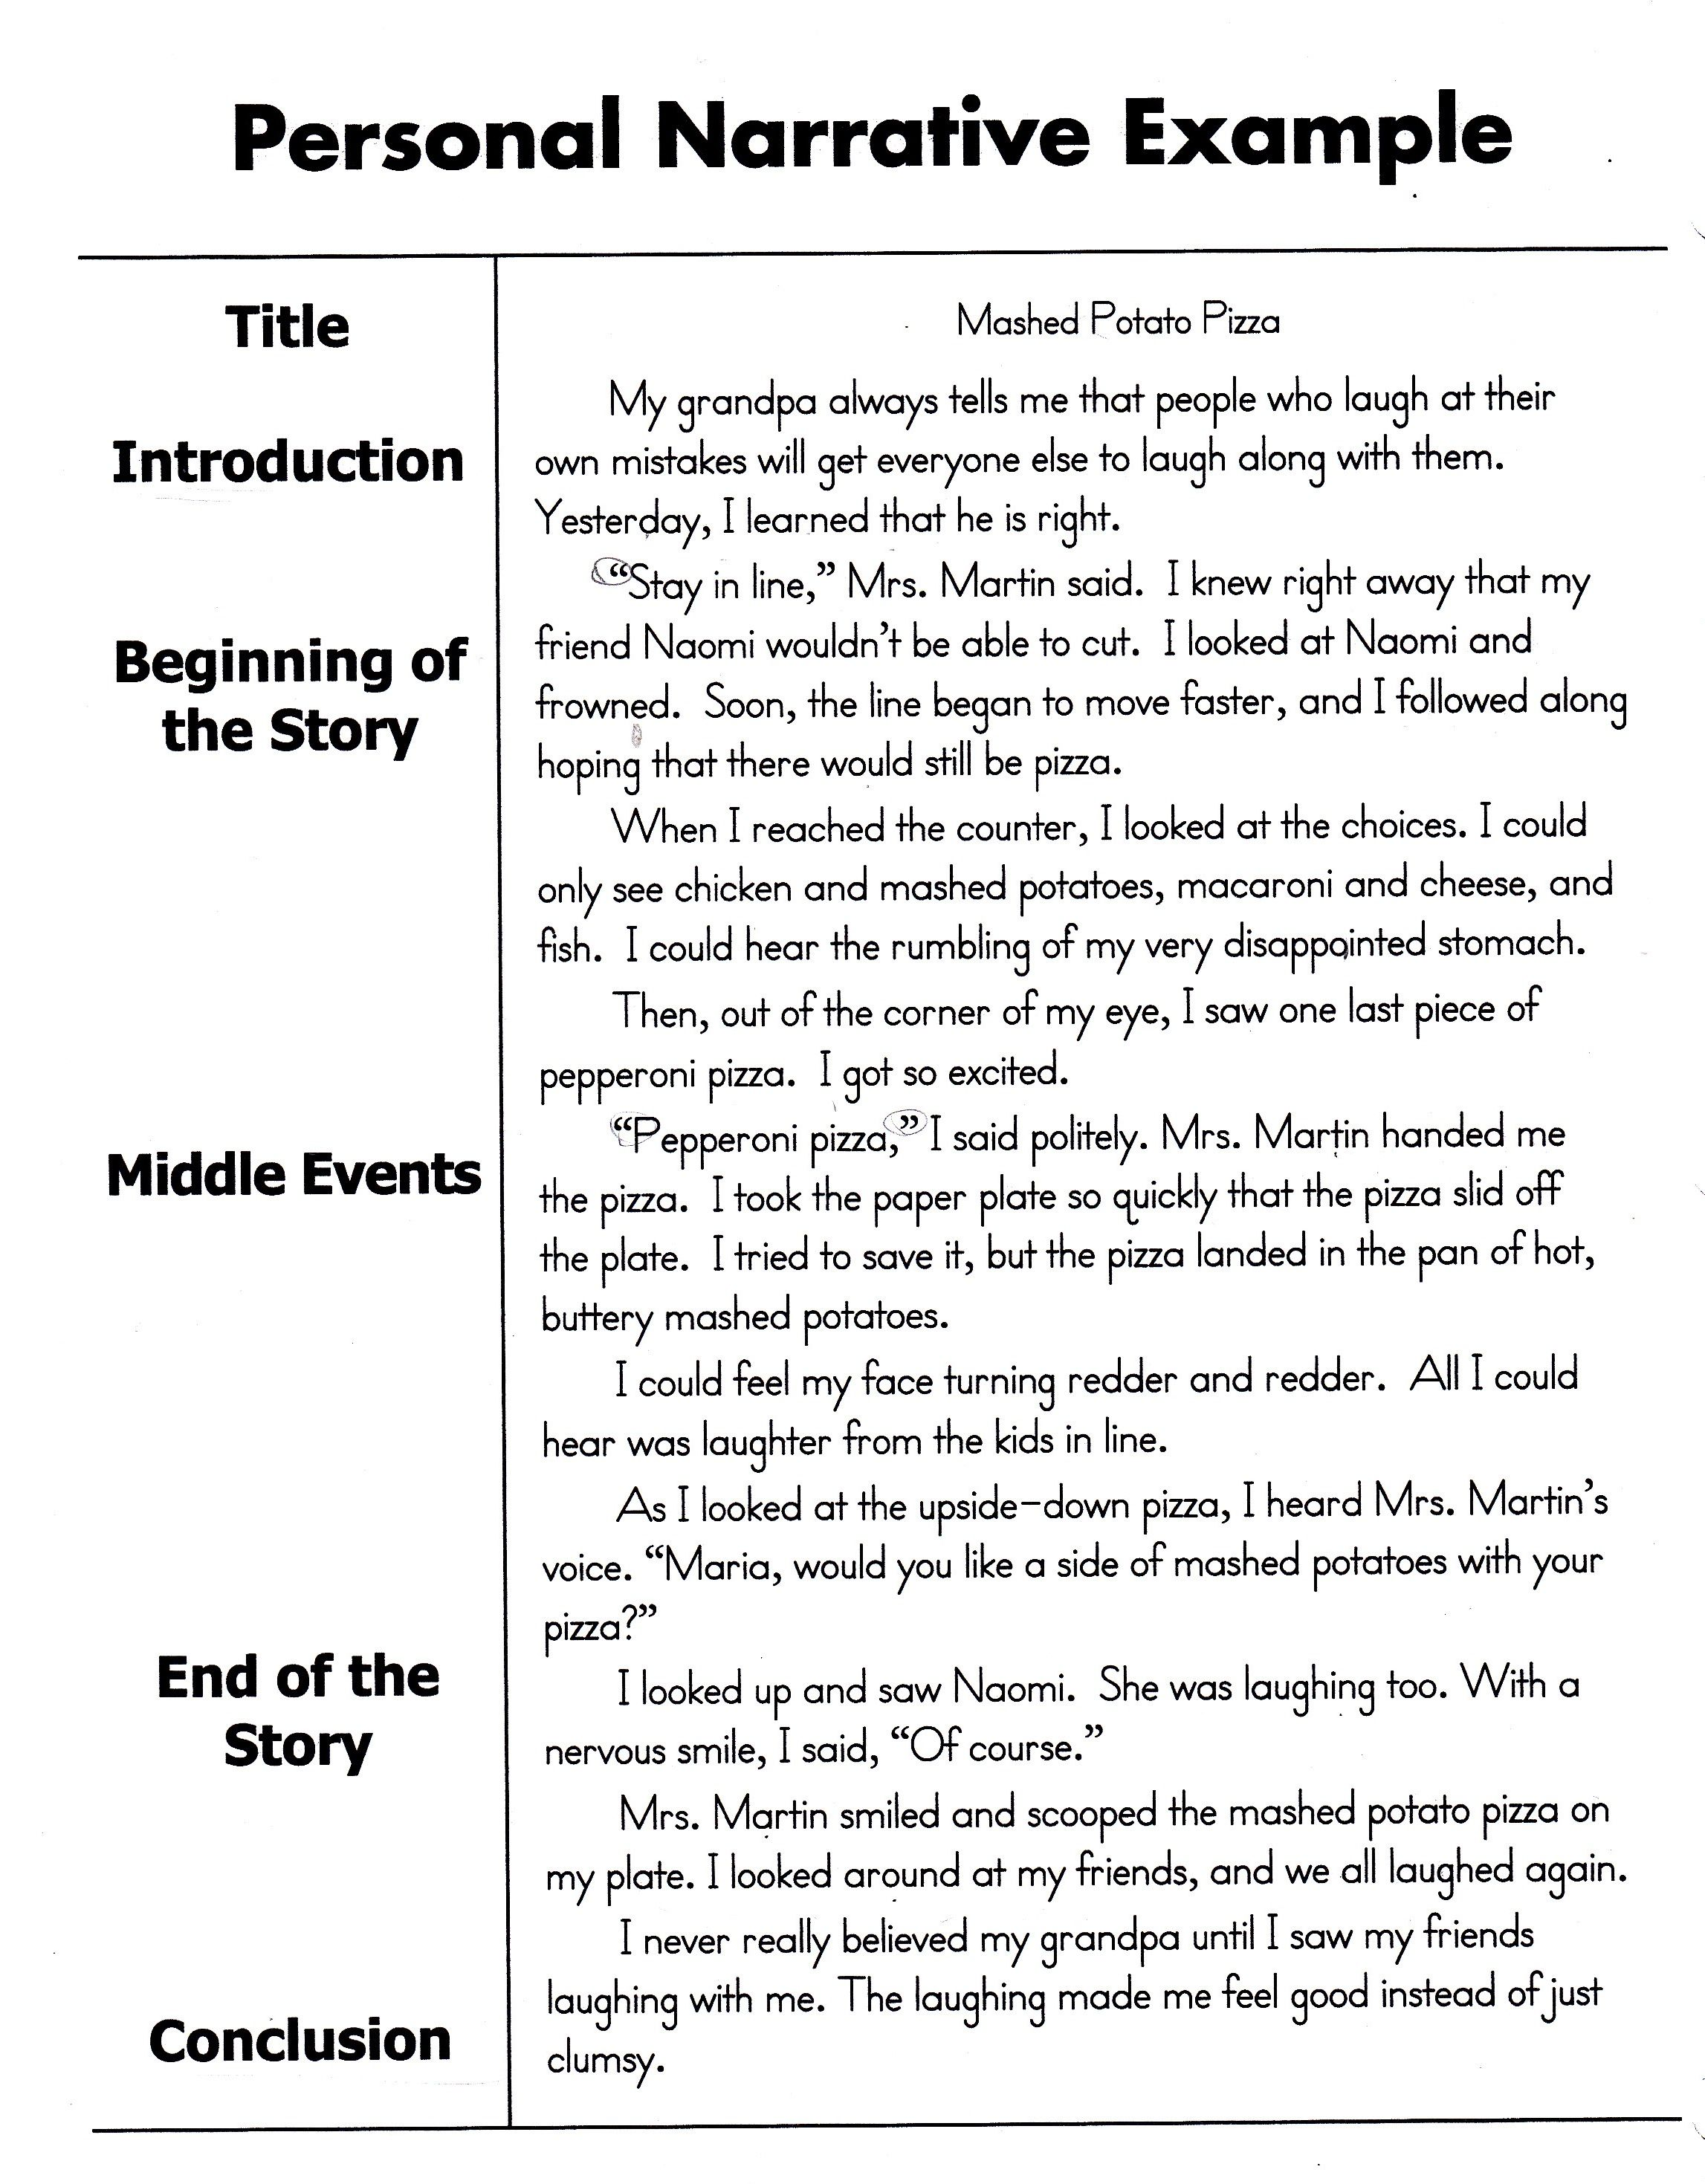 How To Write A Personal Narrative Essay For Th Th Grade Oc  How To Write A Personal Narrative Essay For Th Th Grade Oc Narrative Essay  Formal Letter Sample Buy Essay Papers also Essay On Health  Thesis Statement For A Persuasive Essay